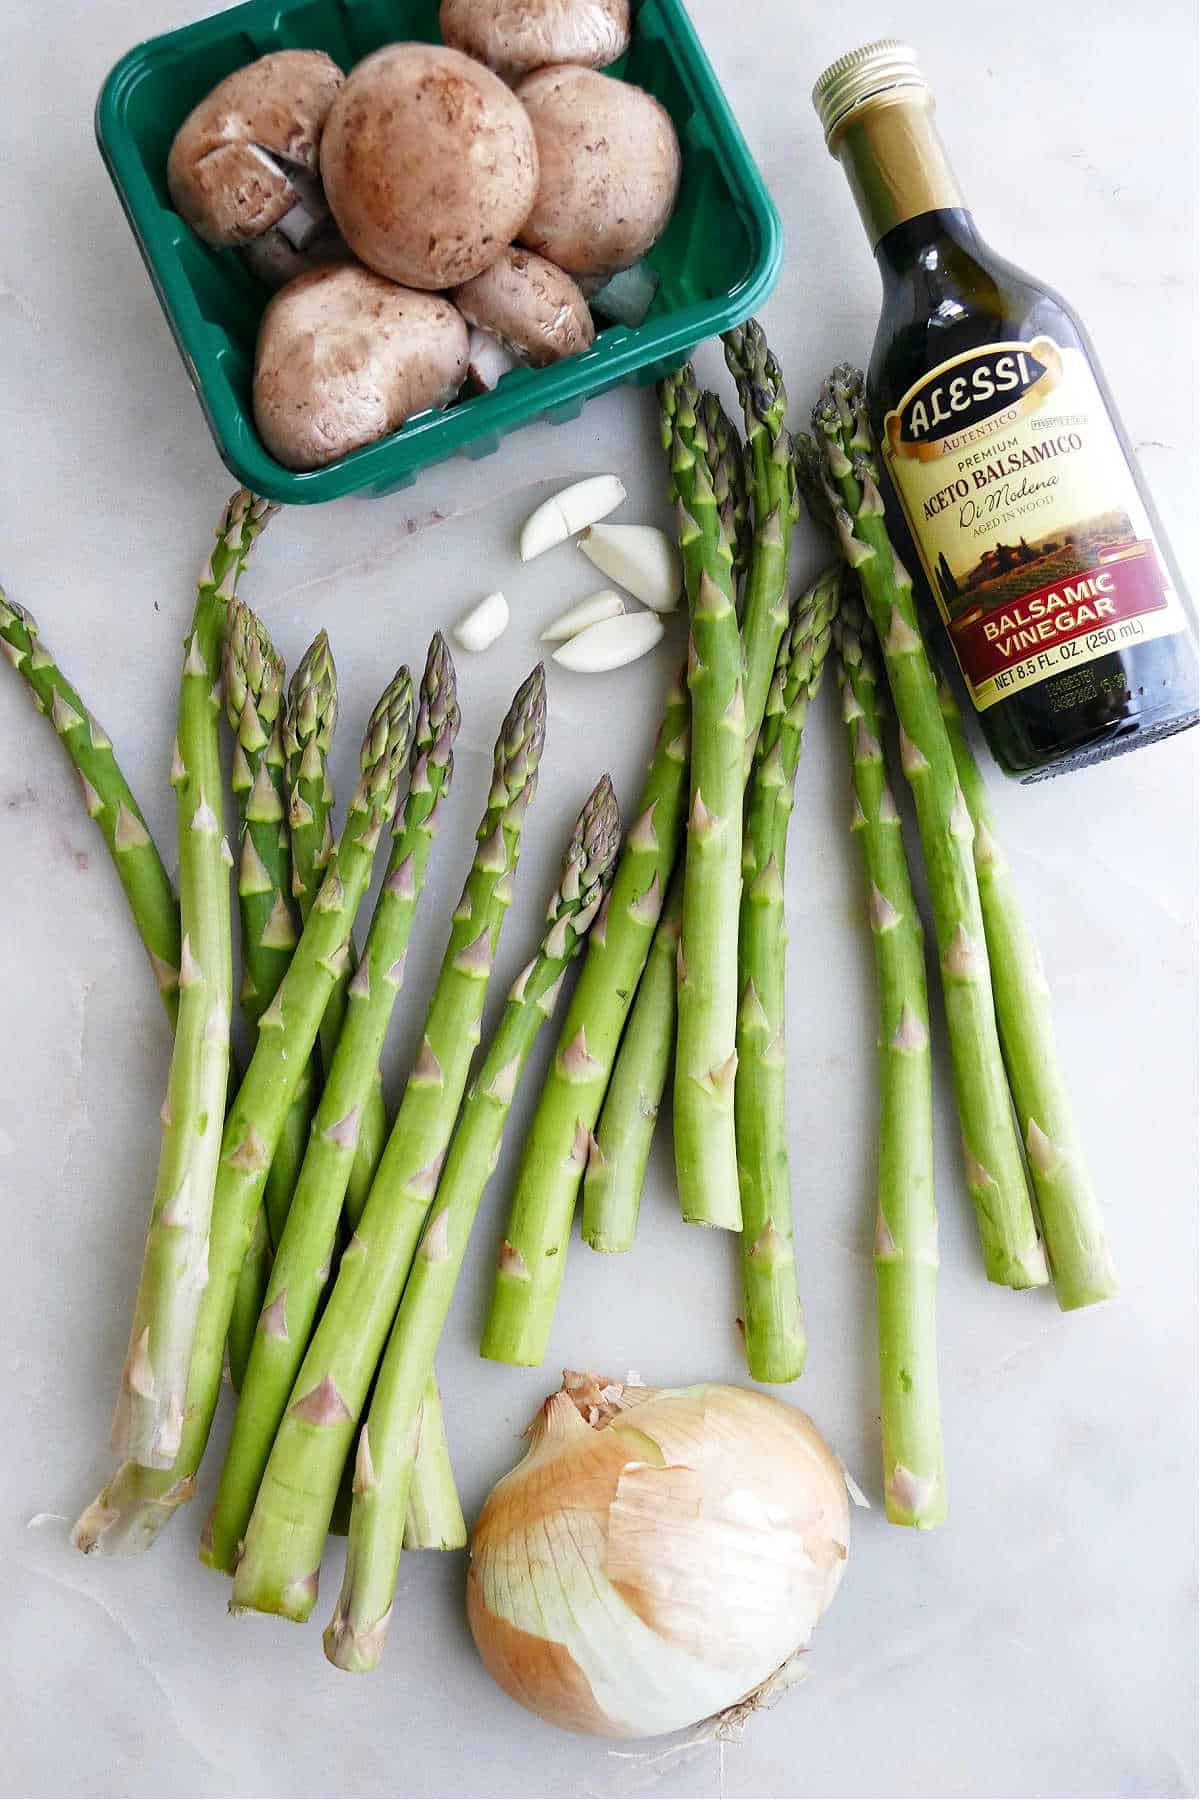 mushrooms, asparagus, garlic, balsamic vinegar, and onion spread out on a counter